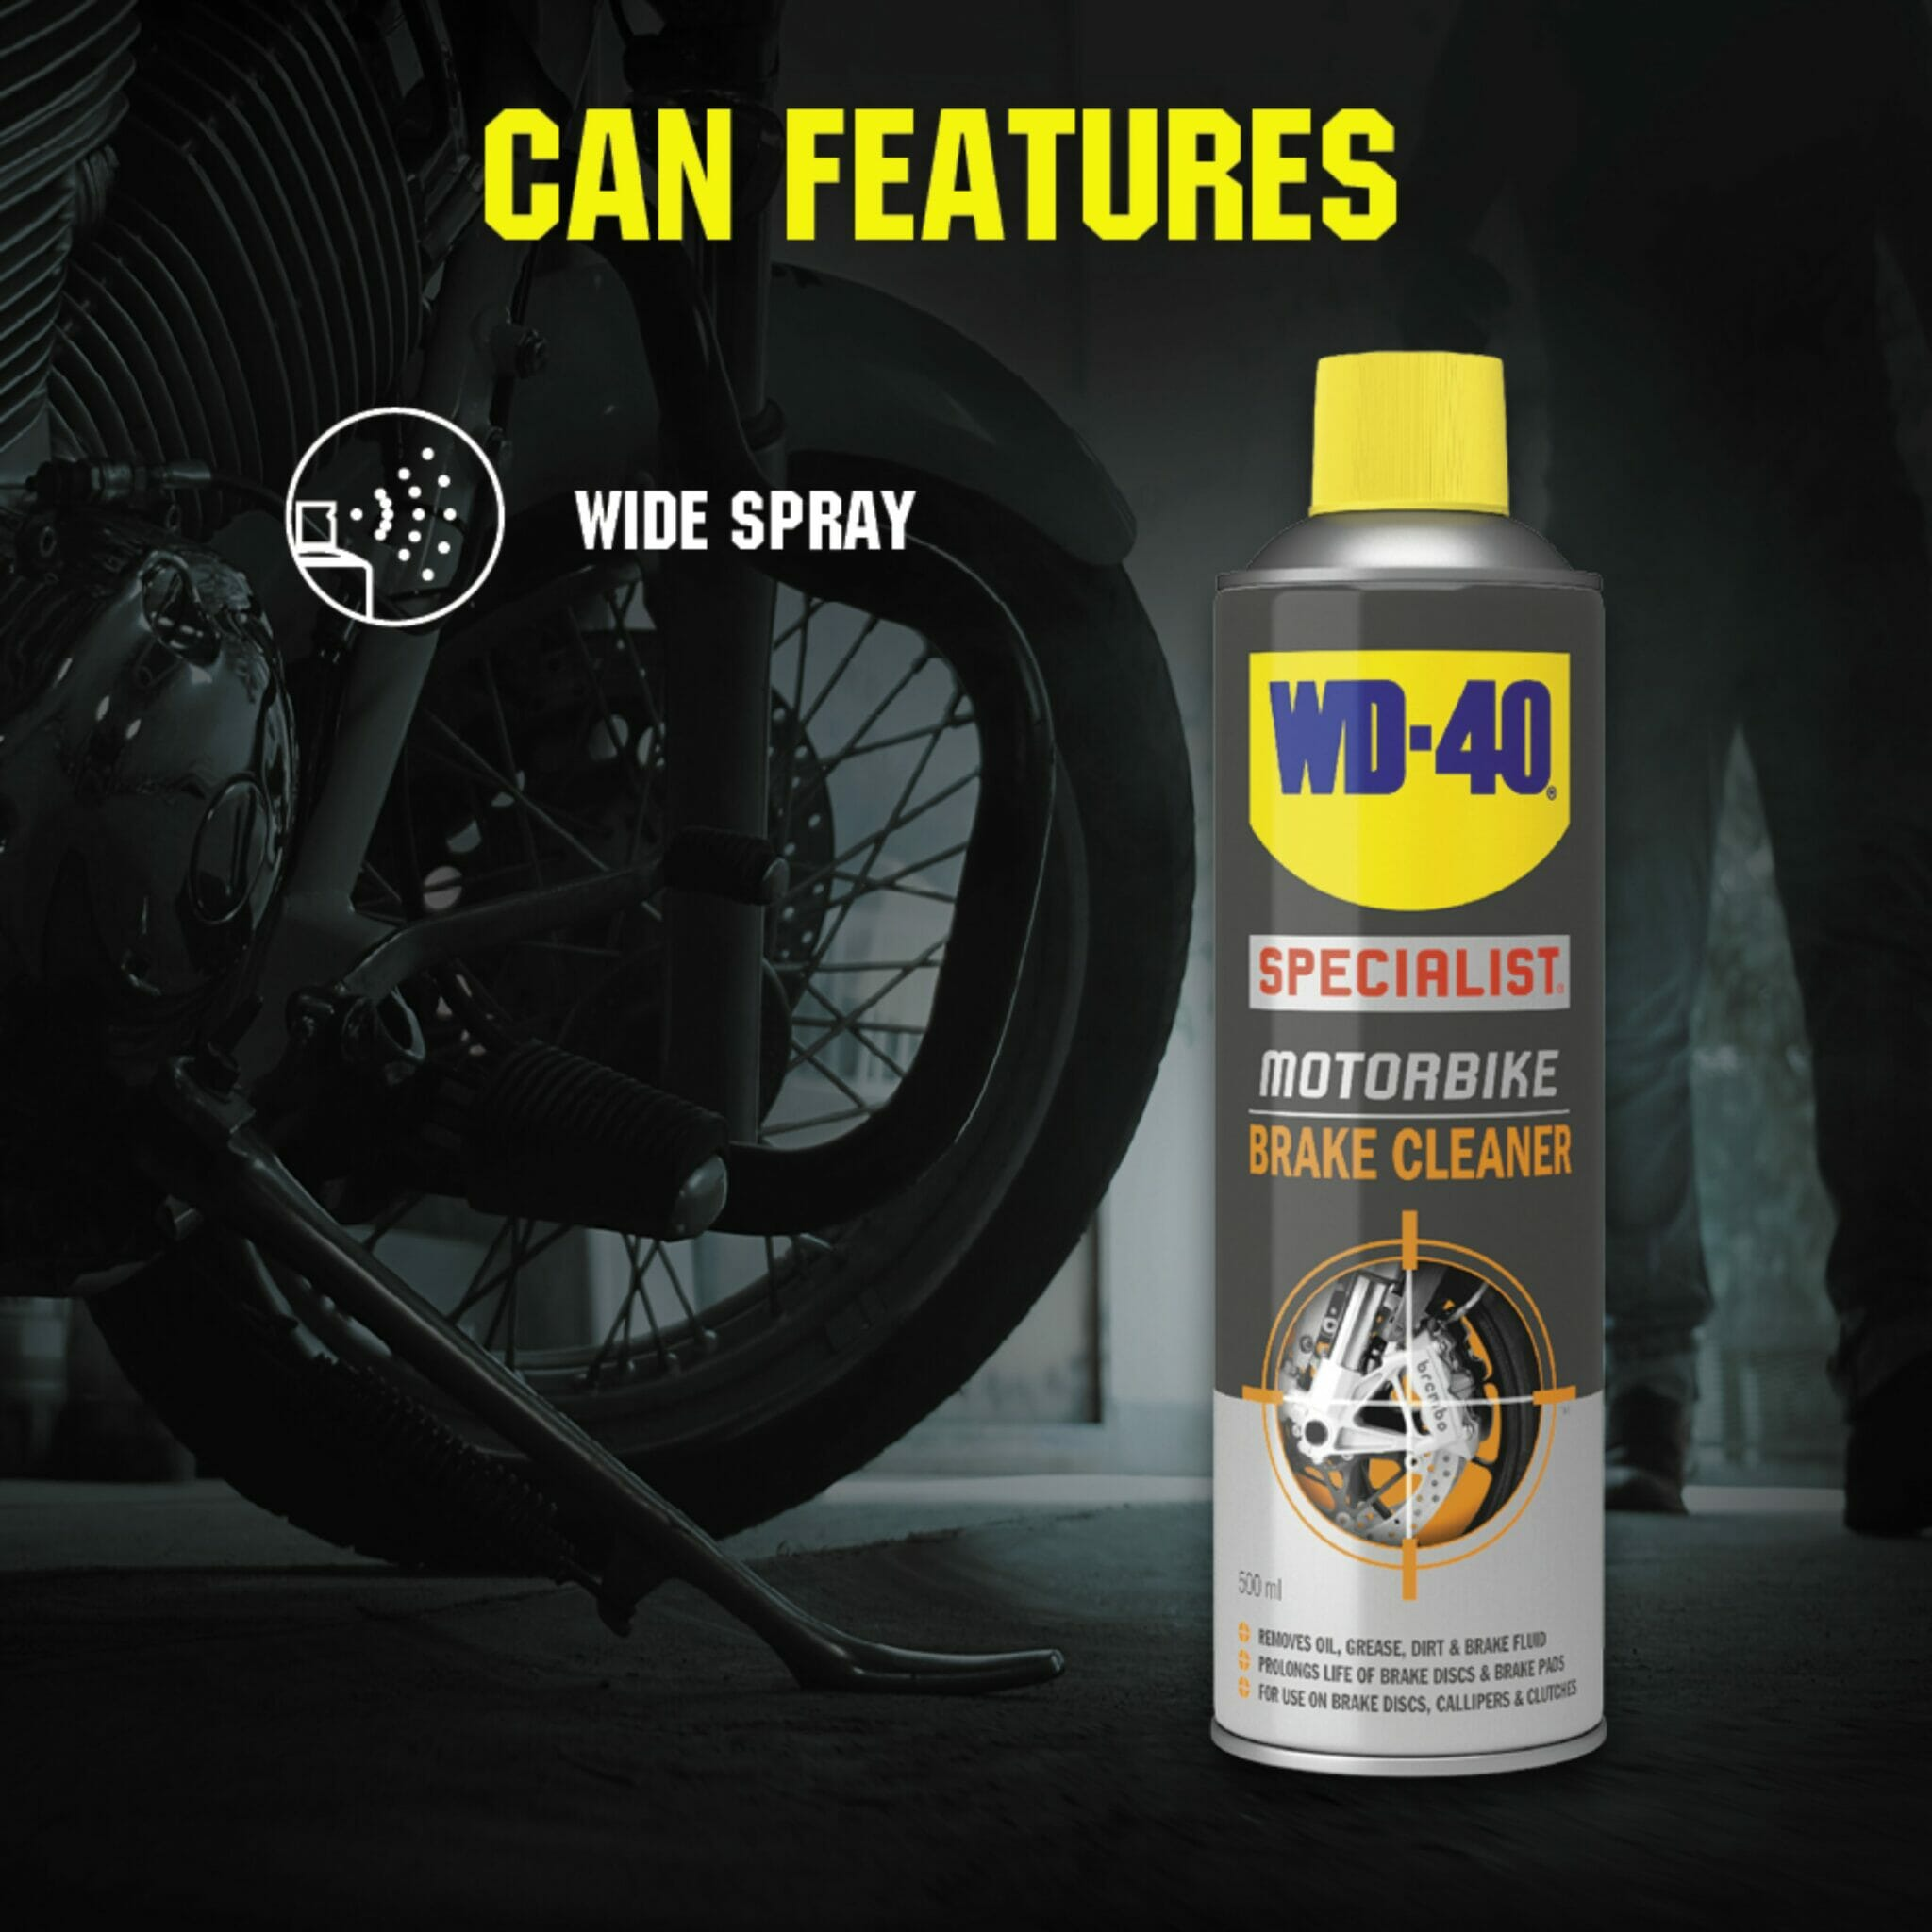 uk wd40 specialist motorbike brake cleaner 400ml can features lifestyle background